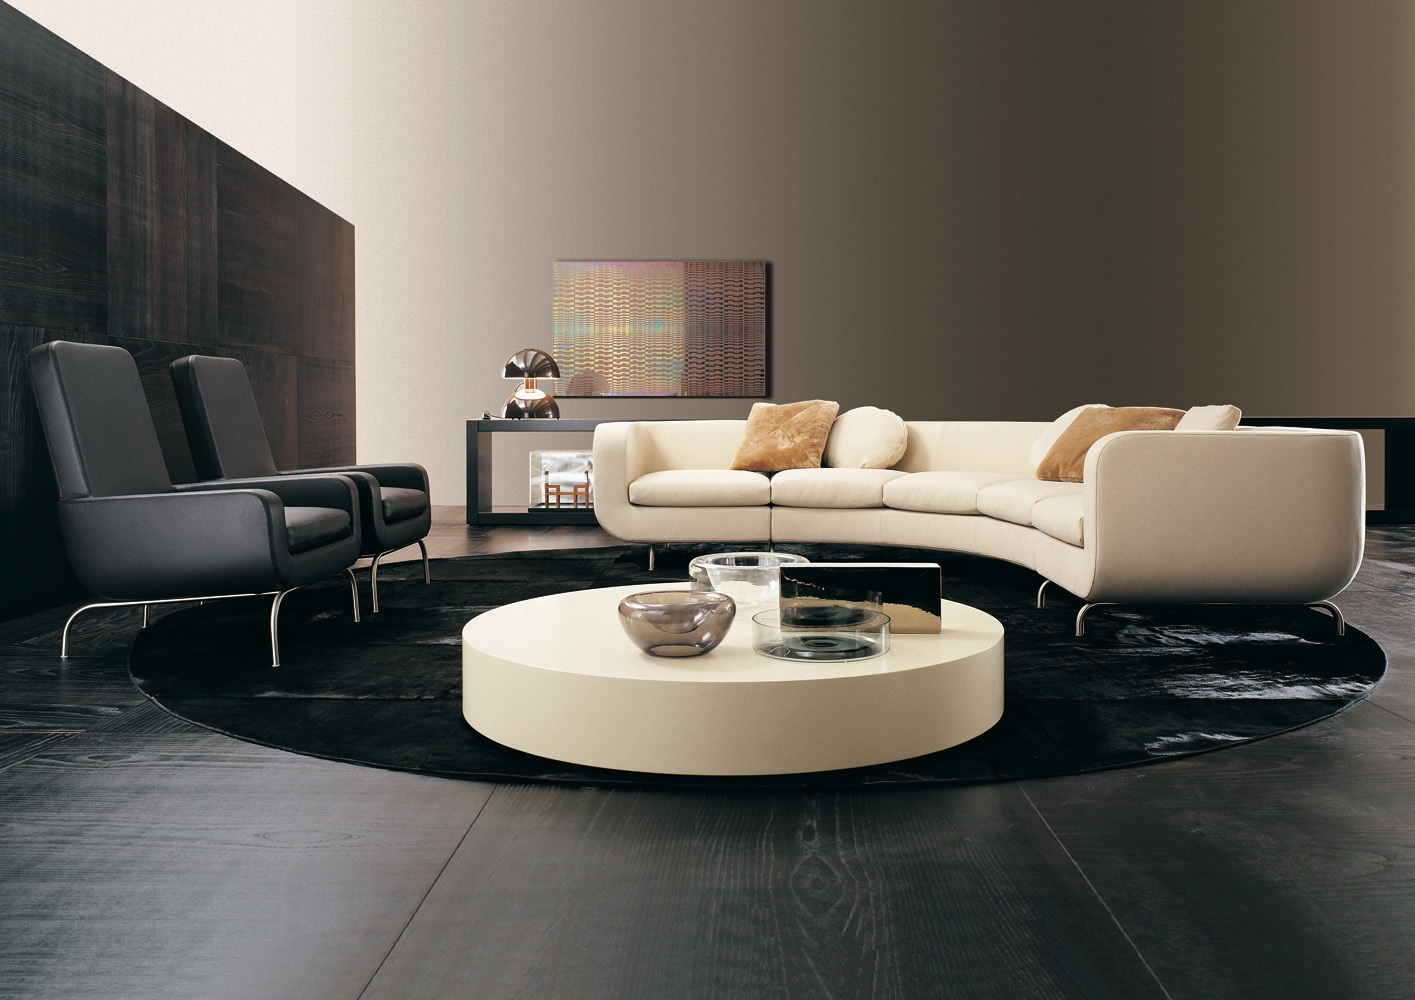 Modular sofa for relaxing dubuffet minotti luxury for Minotti outlet italy